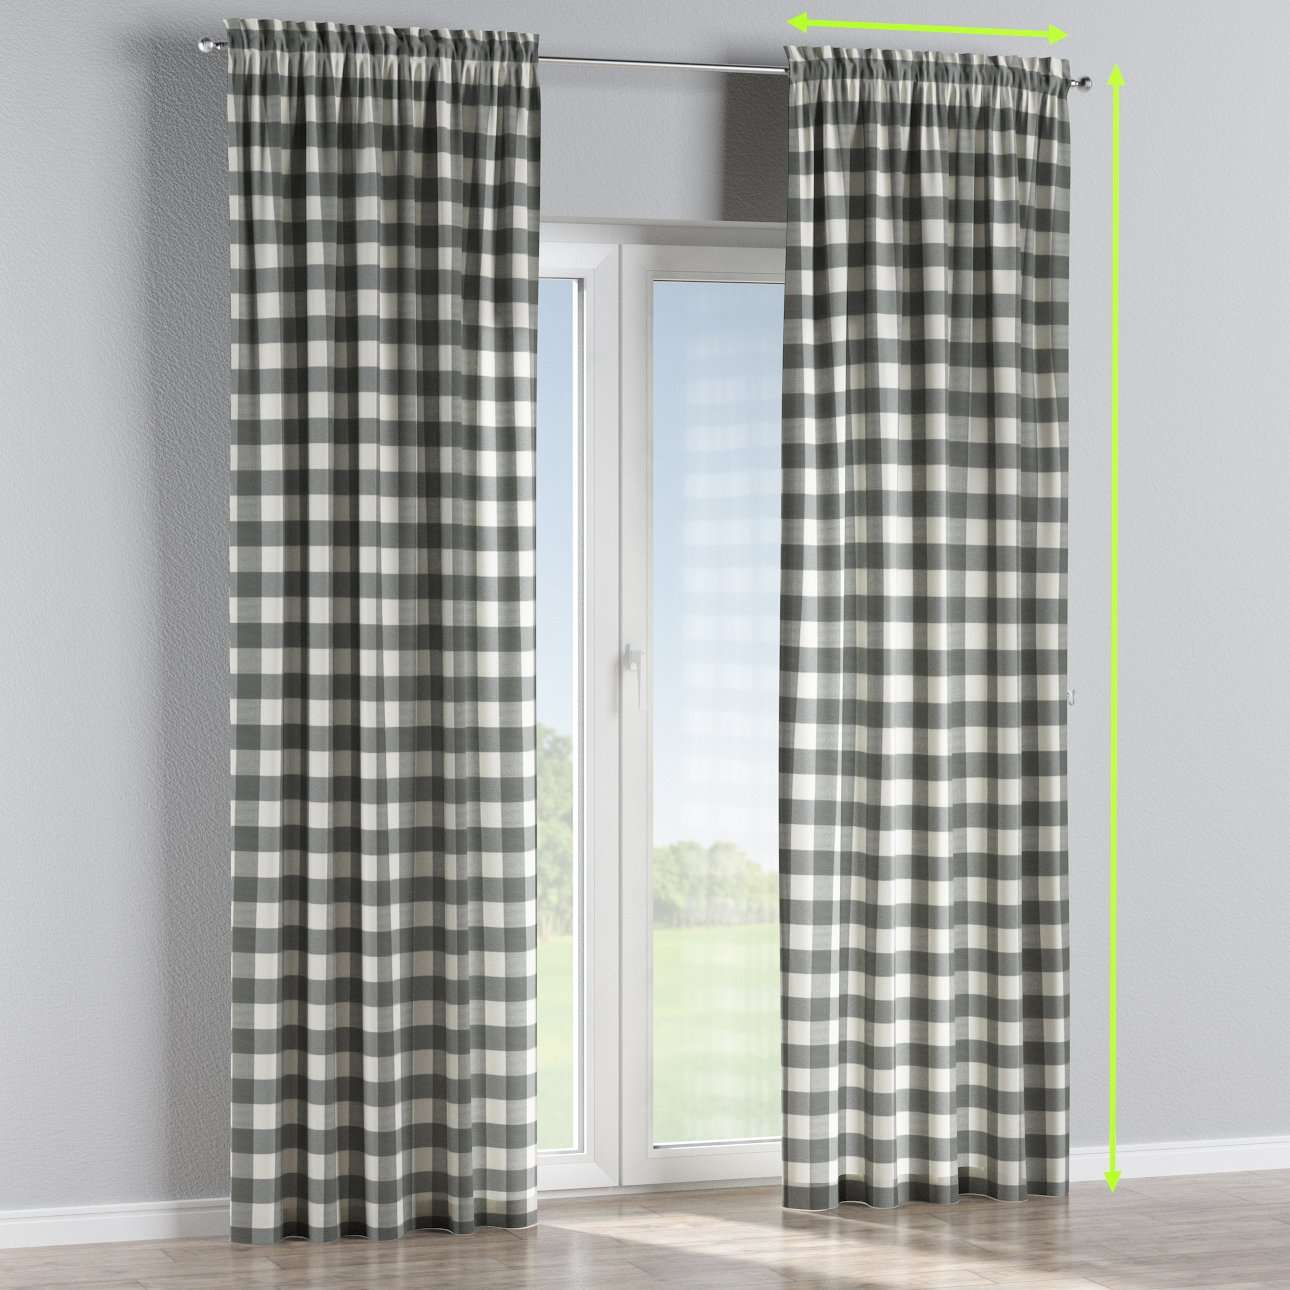 Slot and frill lined curtains in collection Quadro, fabric: 136-13